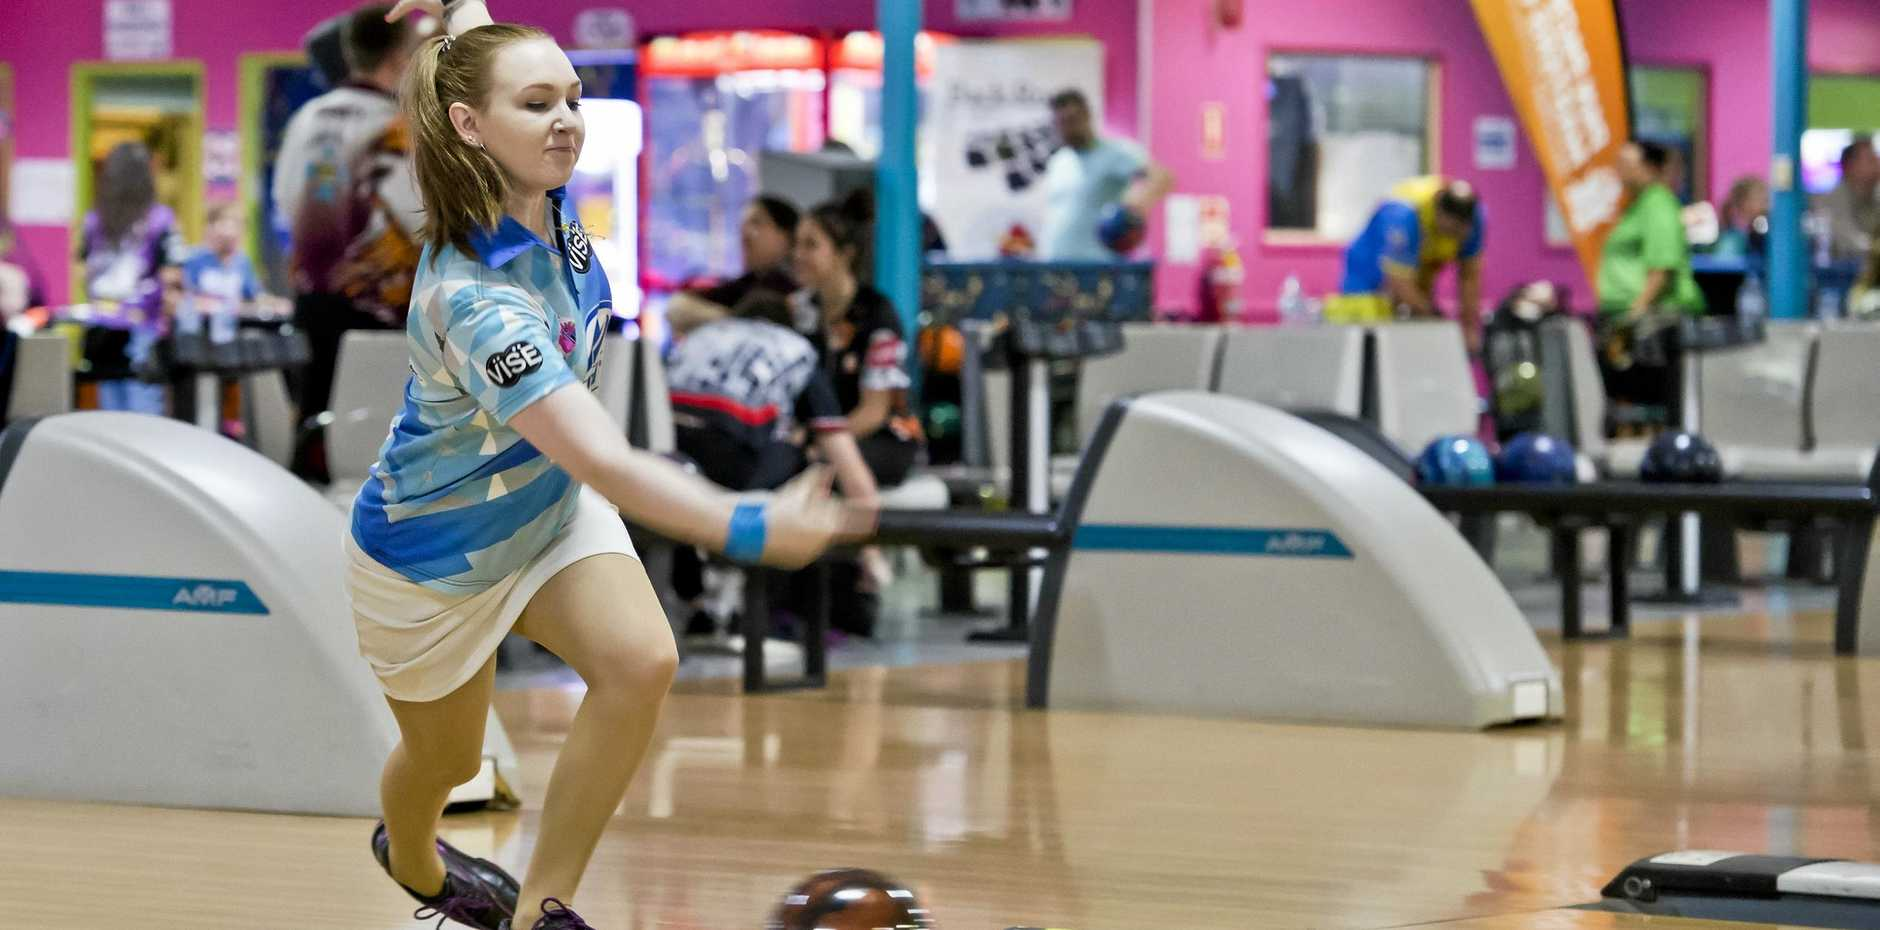 GOOD DELIVERY: Gabrielle Vettiger sends down a bowl during the Tenpin Bowling State Championships at Toowoomba's Sunset Superbowl.